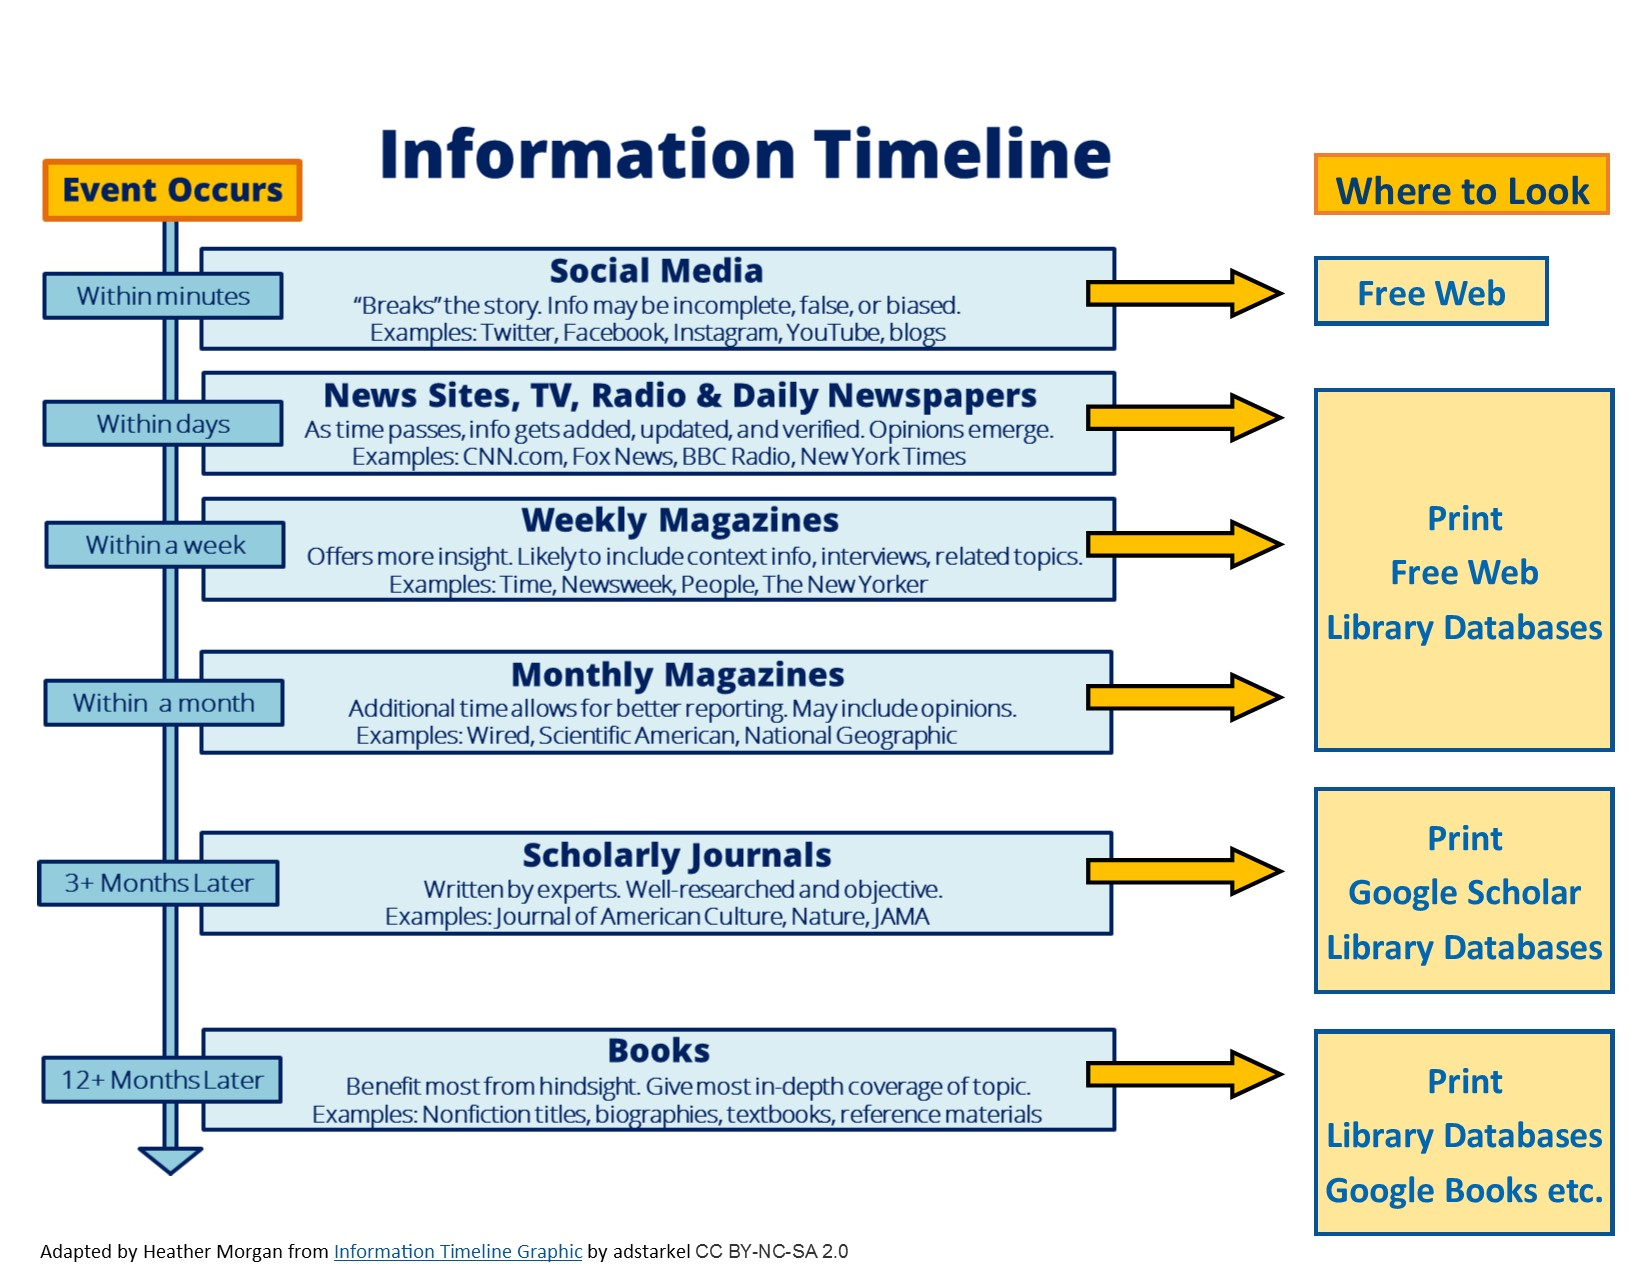 Transcription of The Information Timeline chart available below.